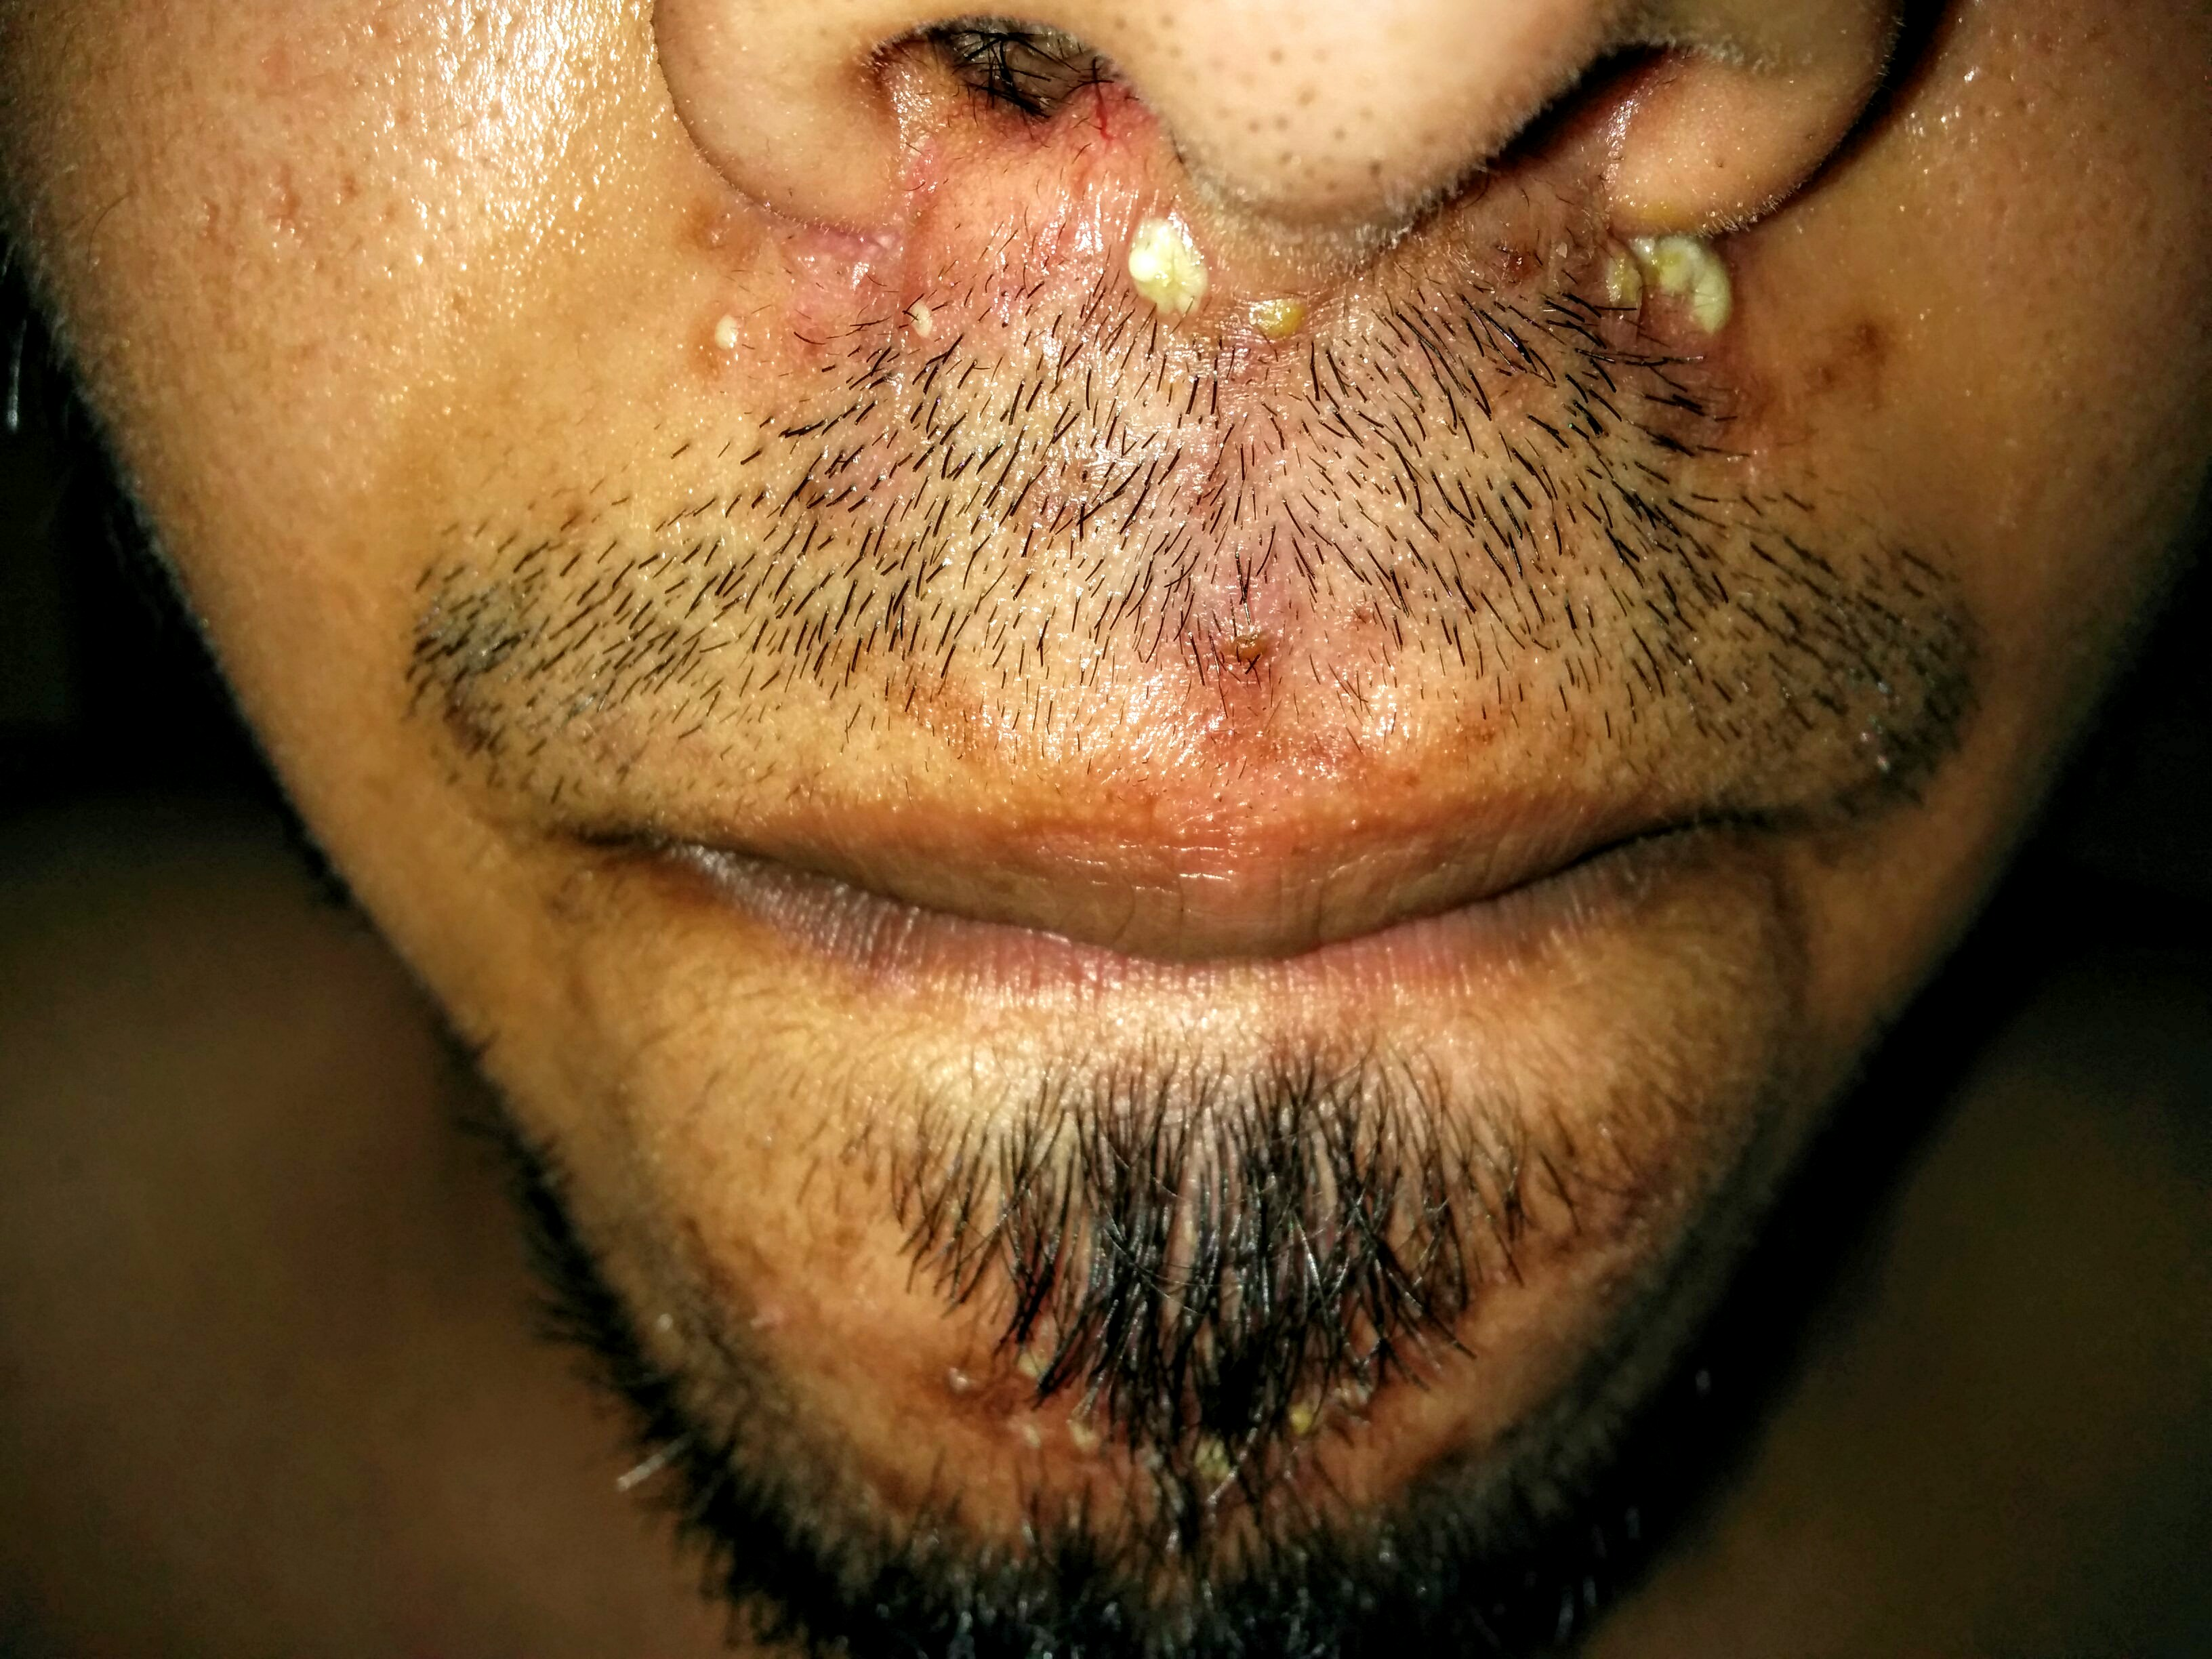 White pustules around mouthnose pictures included general img201508161421292g ccuart Images